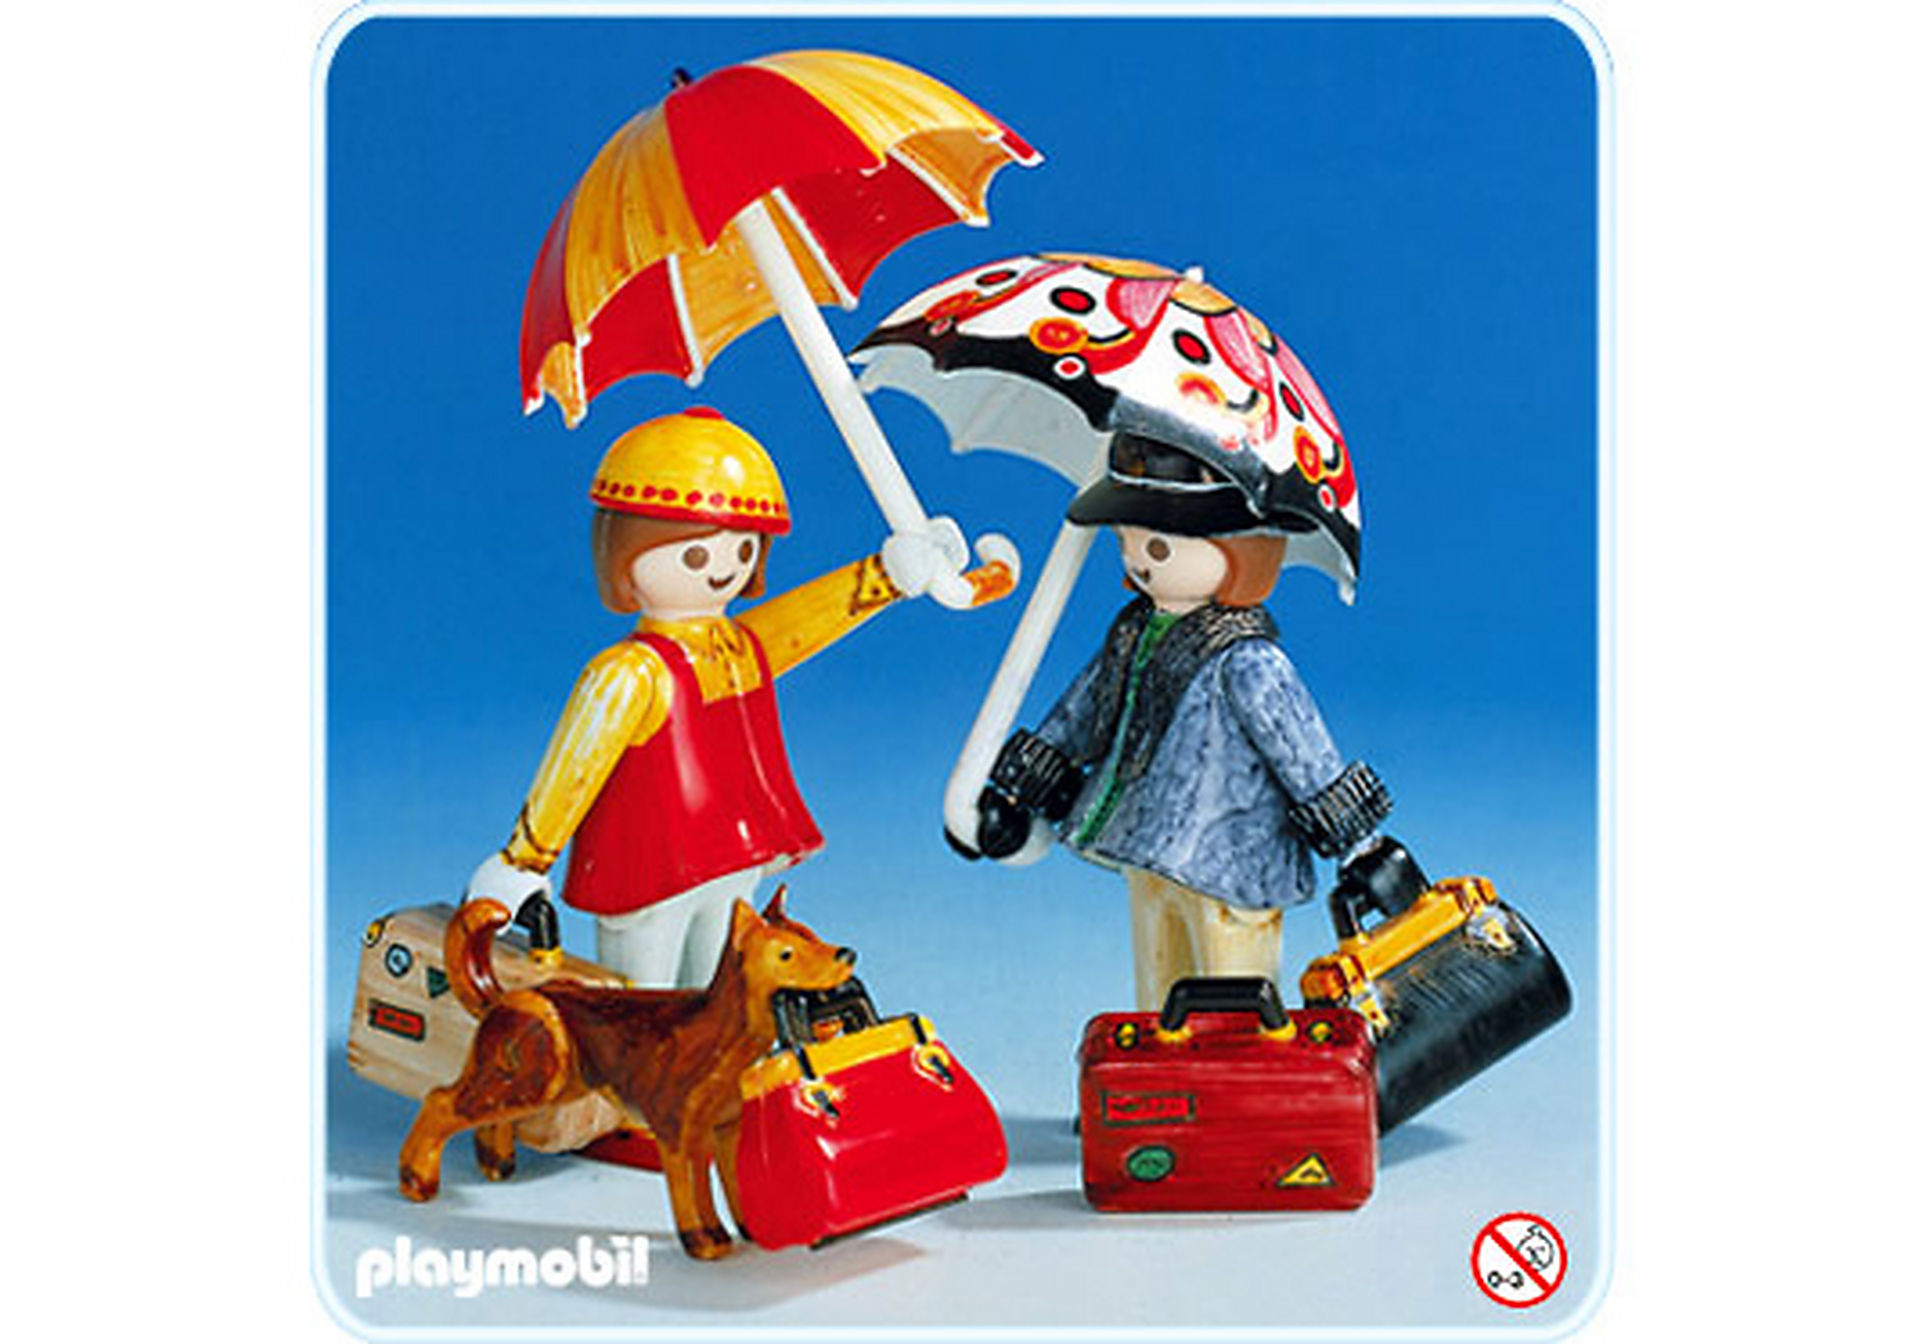 http://media.playmobil.com/i/playmobil/3681-A_product_detail/2 Reisende/Taschen Color